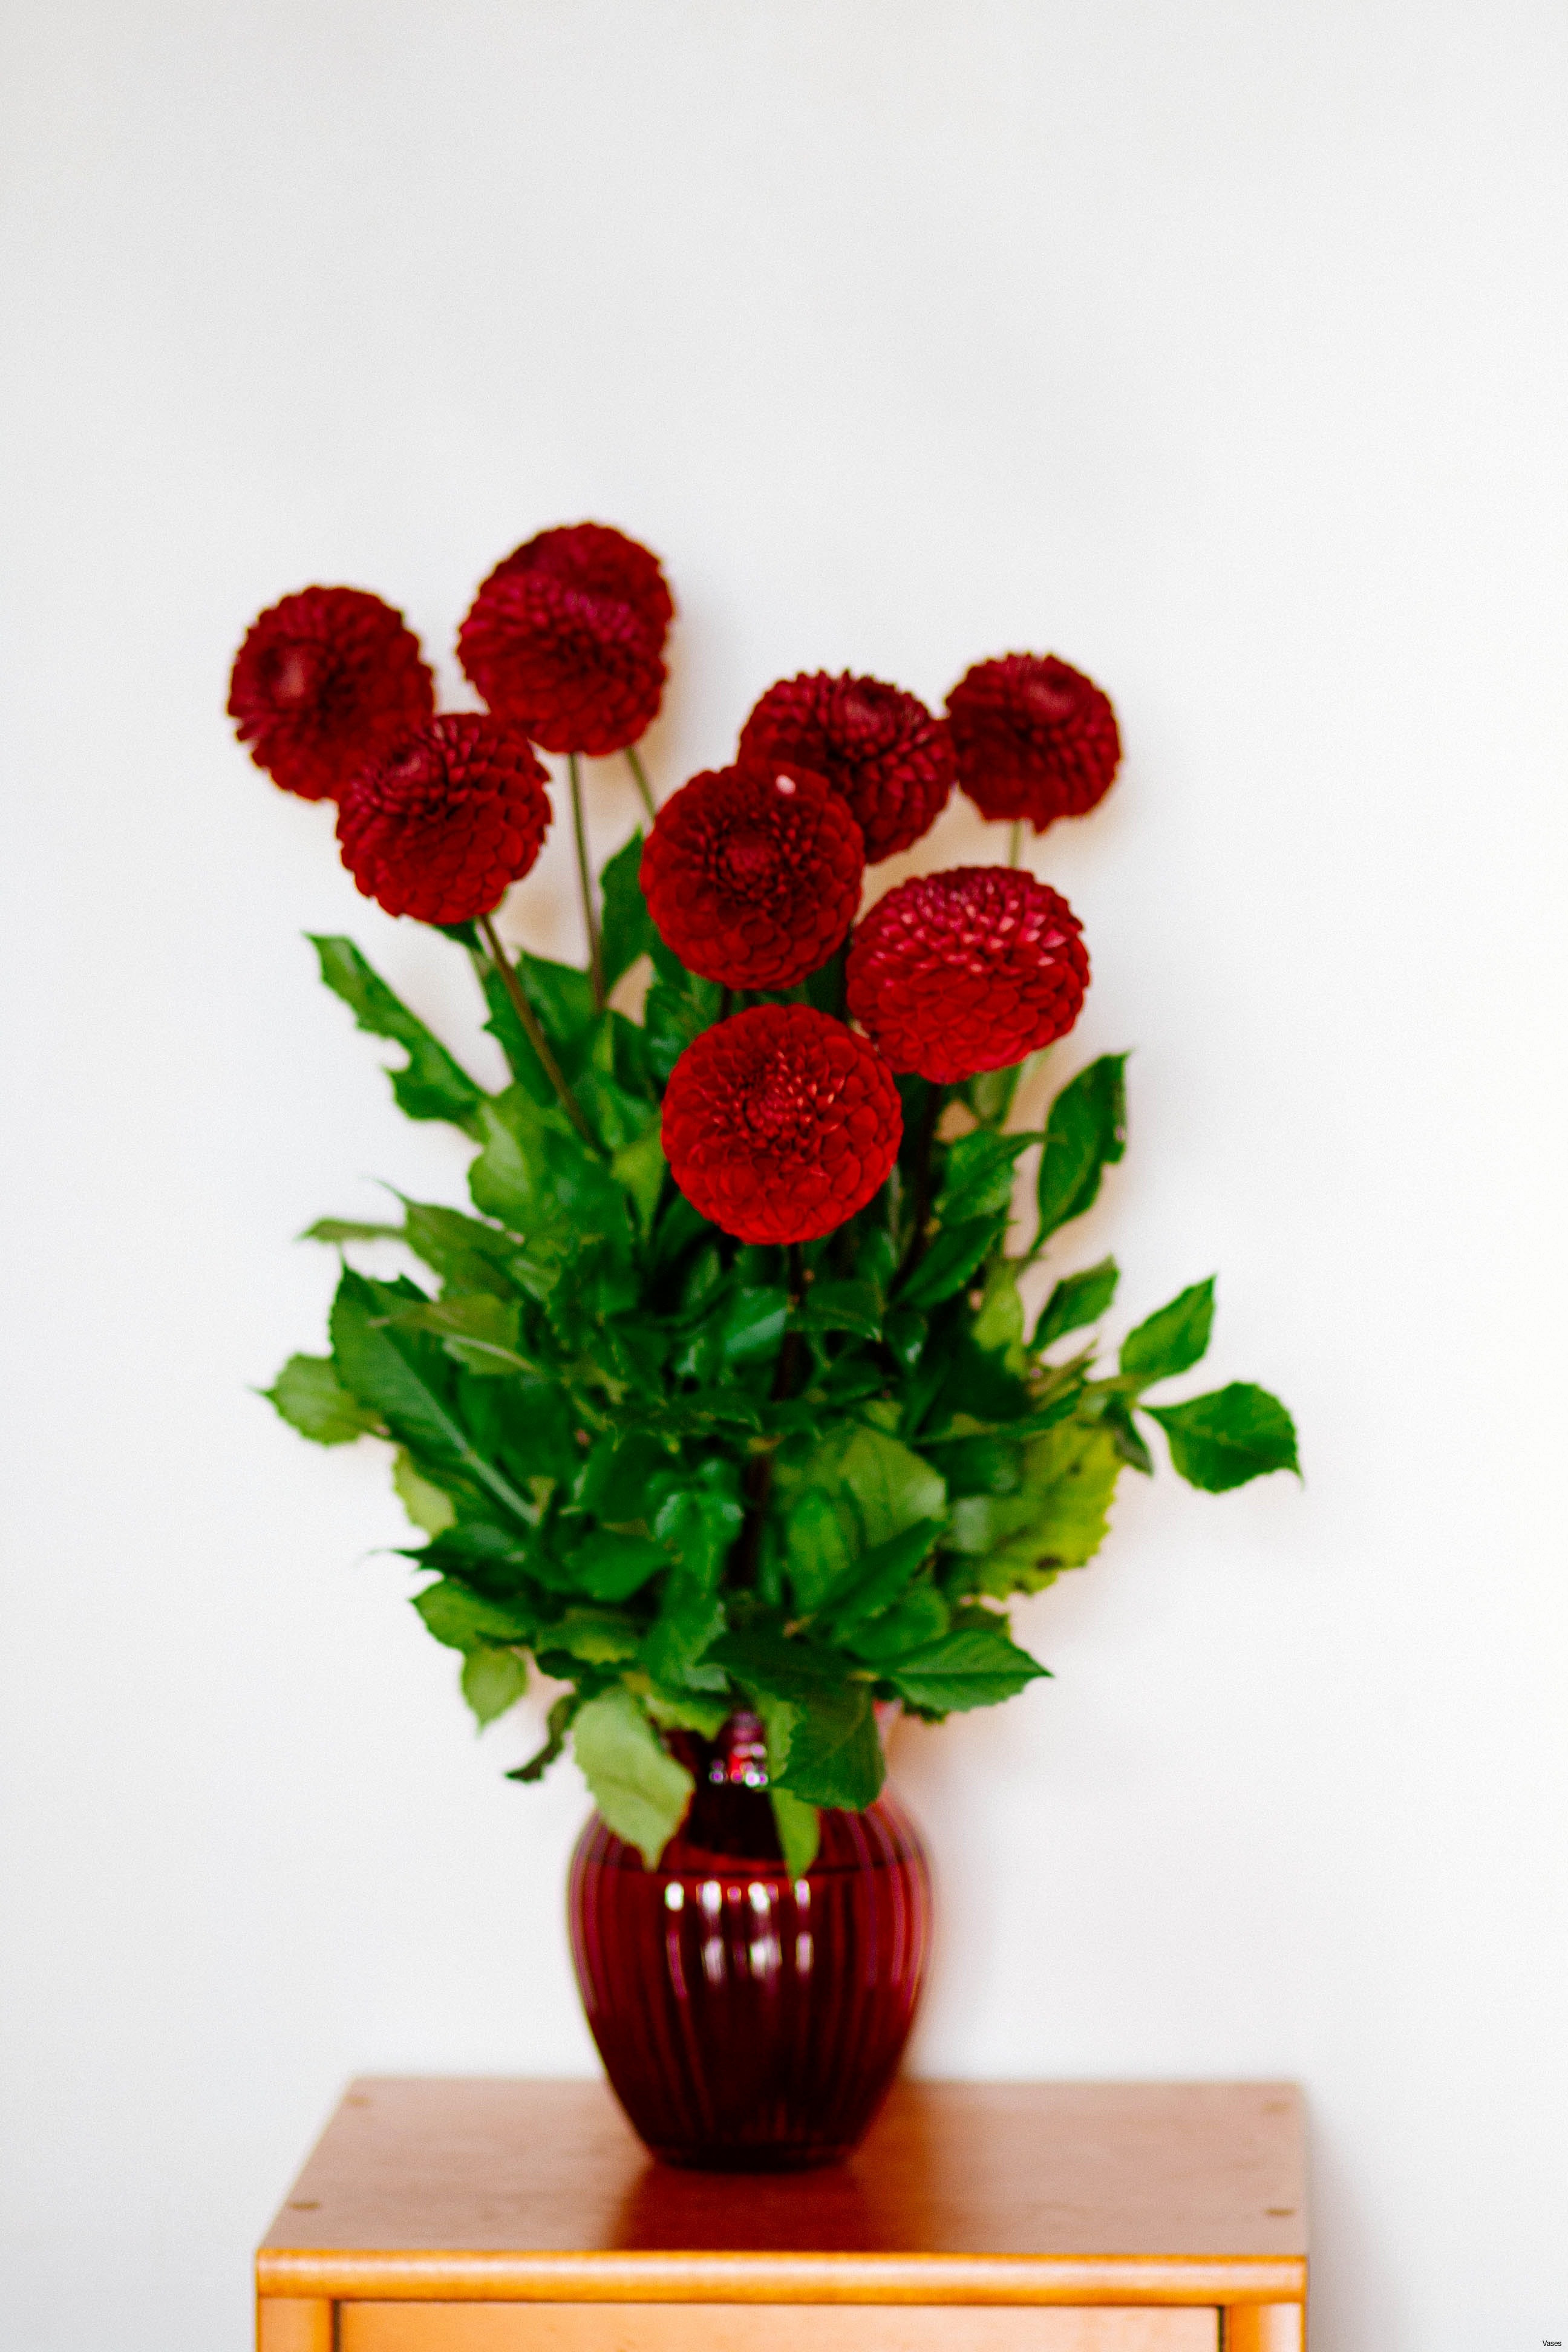 11 Famous Red Roses with Vase 2021 free download red roses with vase of 13 best of red roses in a vase wallpapers cuva wallpaper throughout red roses in a vase wallpapers fresh wallpaper flowers awesome flower vase with frog lid 6